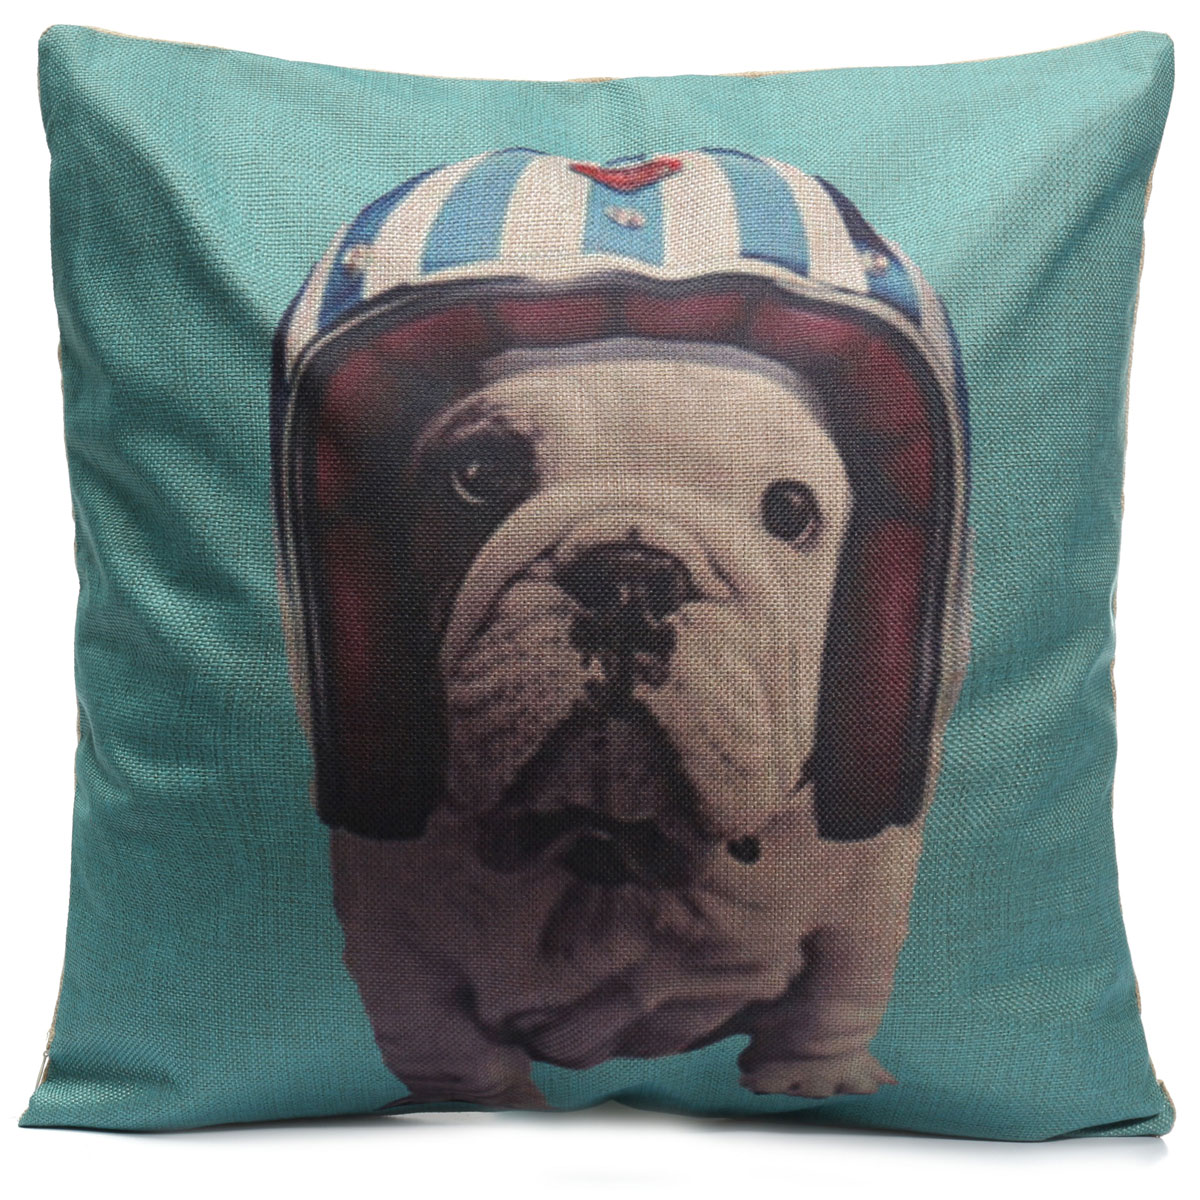 Dogs Throw Pillow Case Square Cushion Cover Home Office Sofa Car Decor